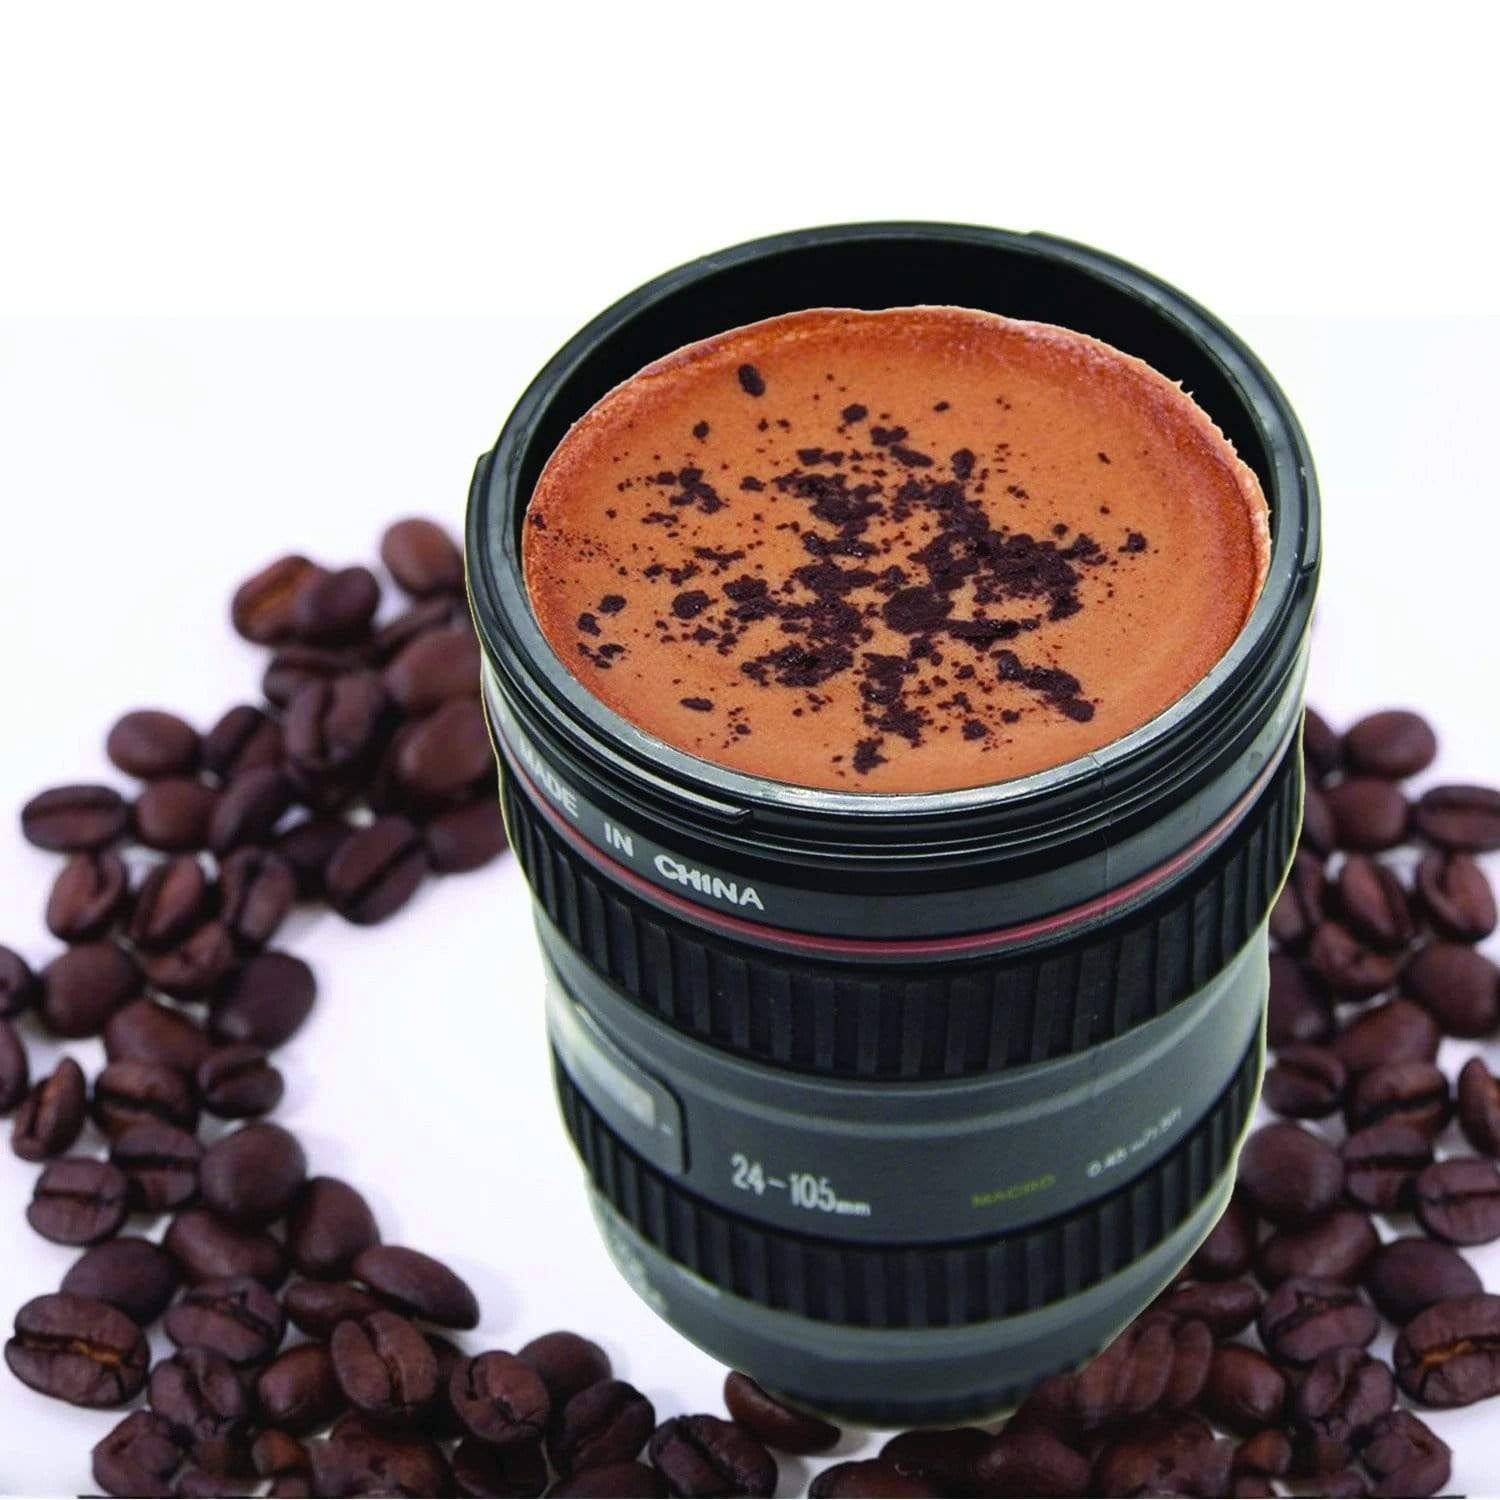 CAMERA LENS SHAPED COFFEE MUG FLASK WITH LID